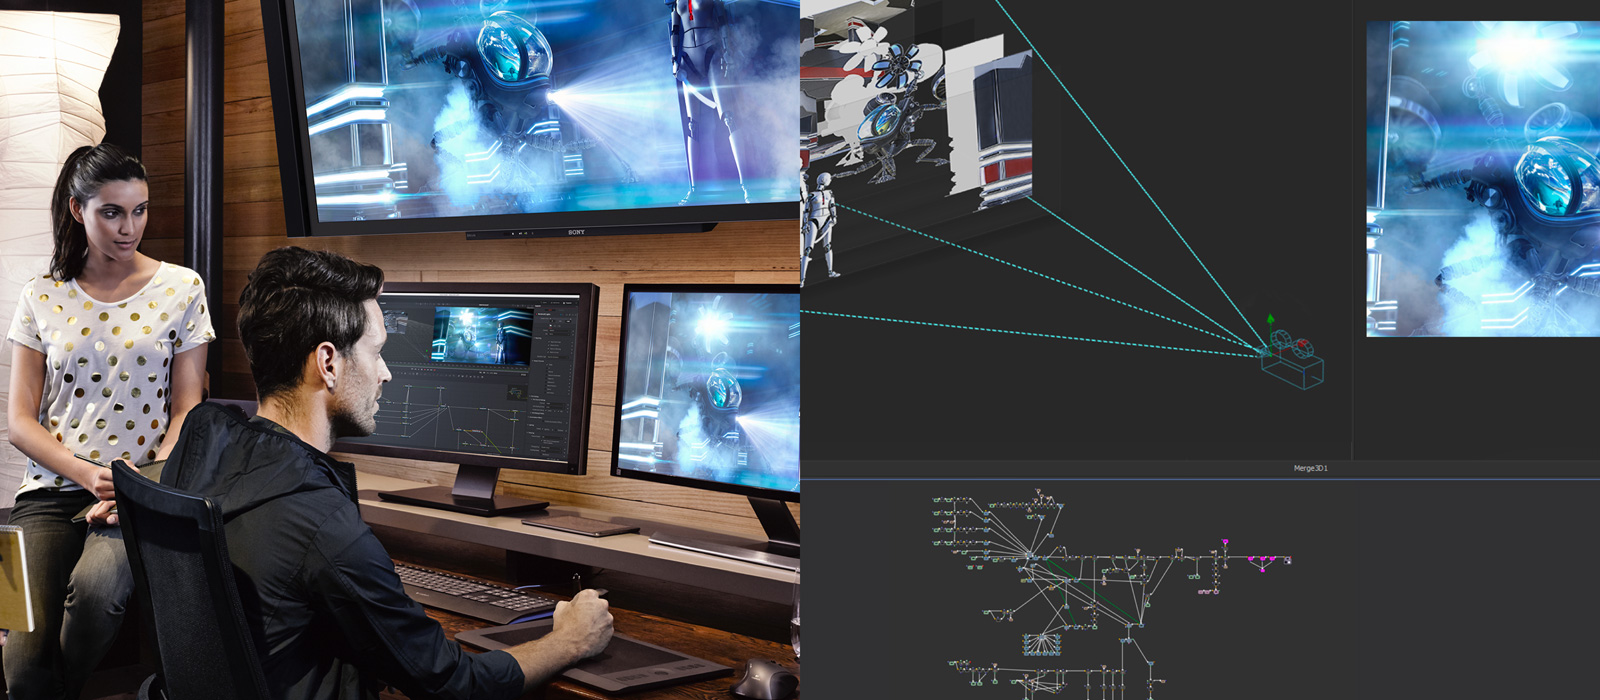 Broadcast design and motiongraphics